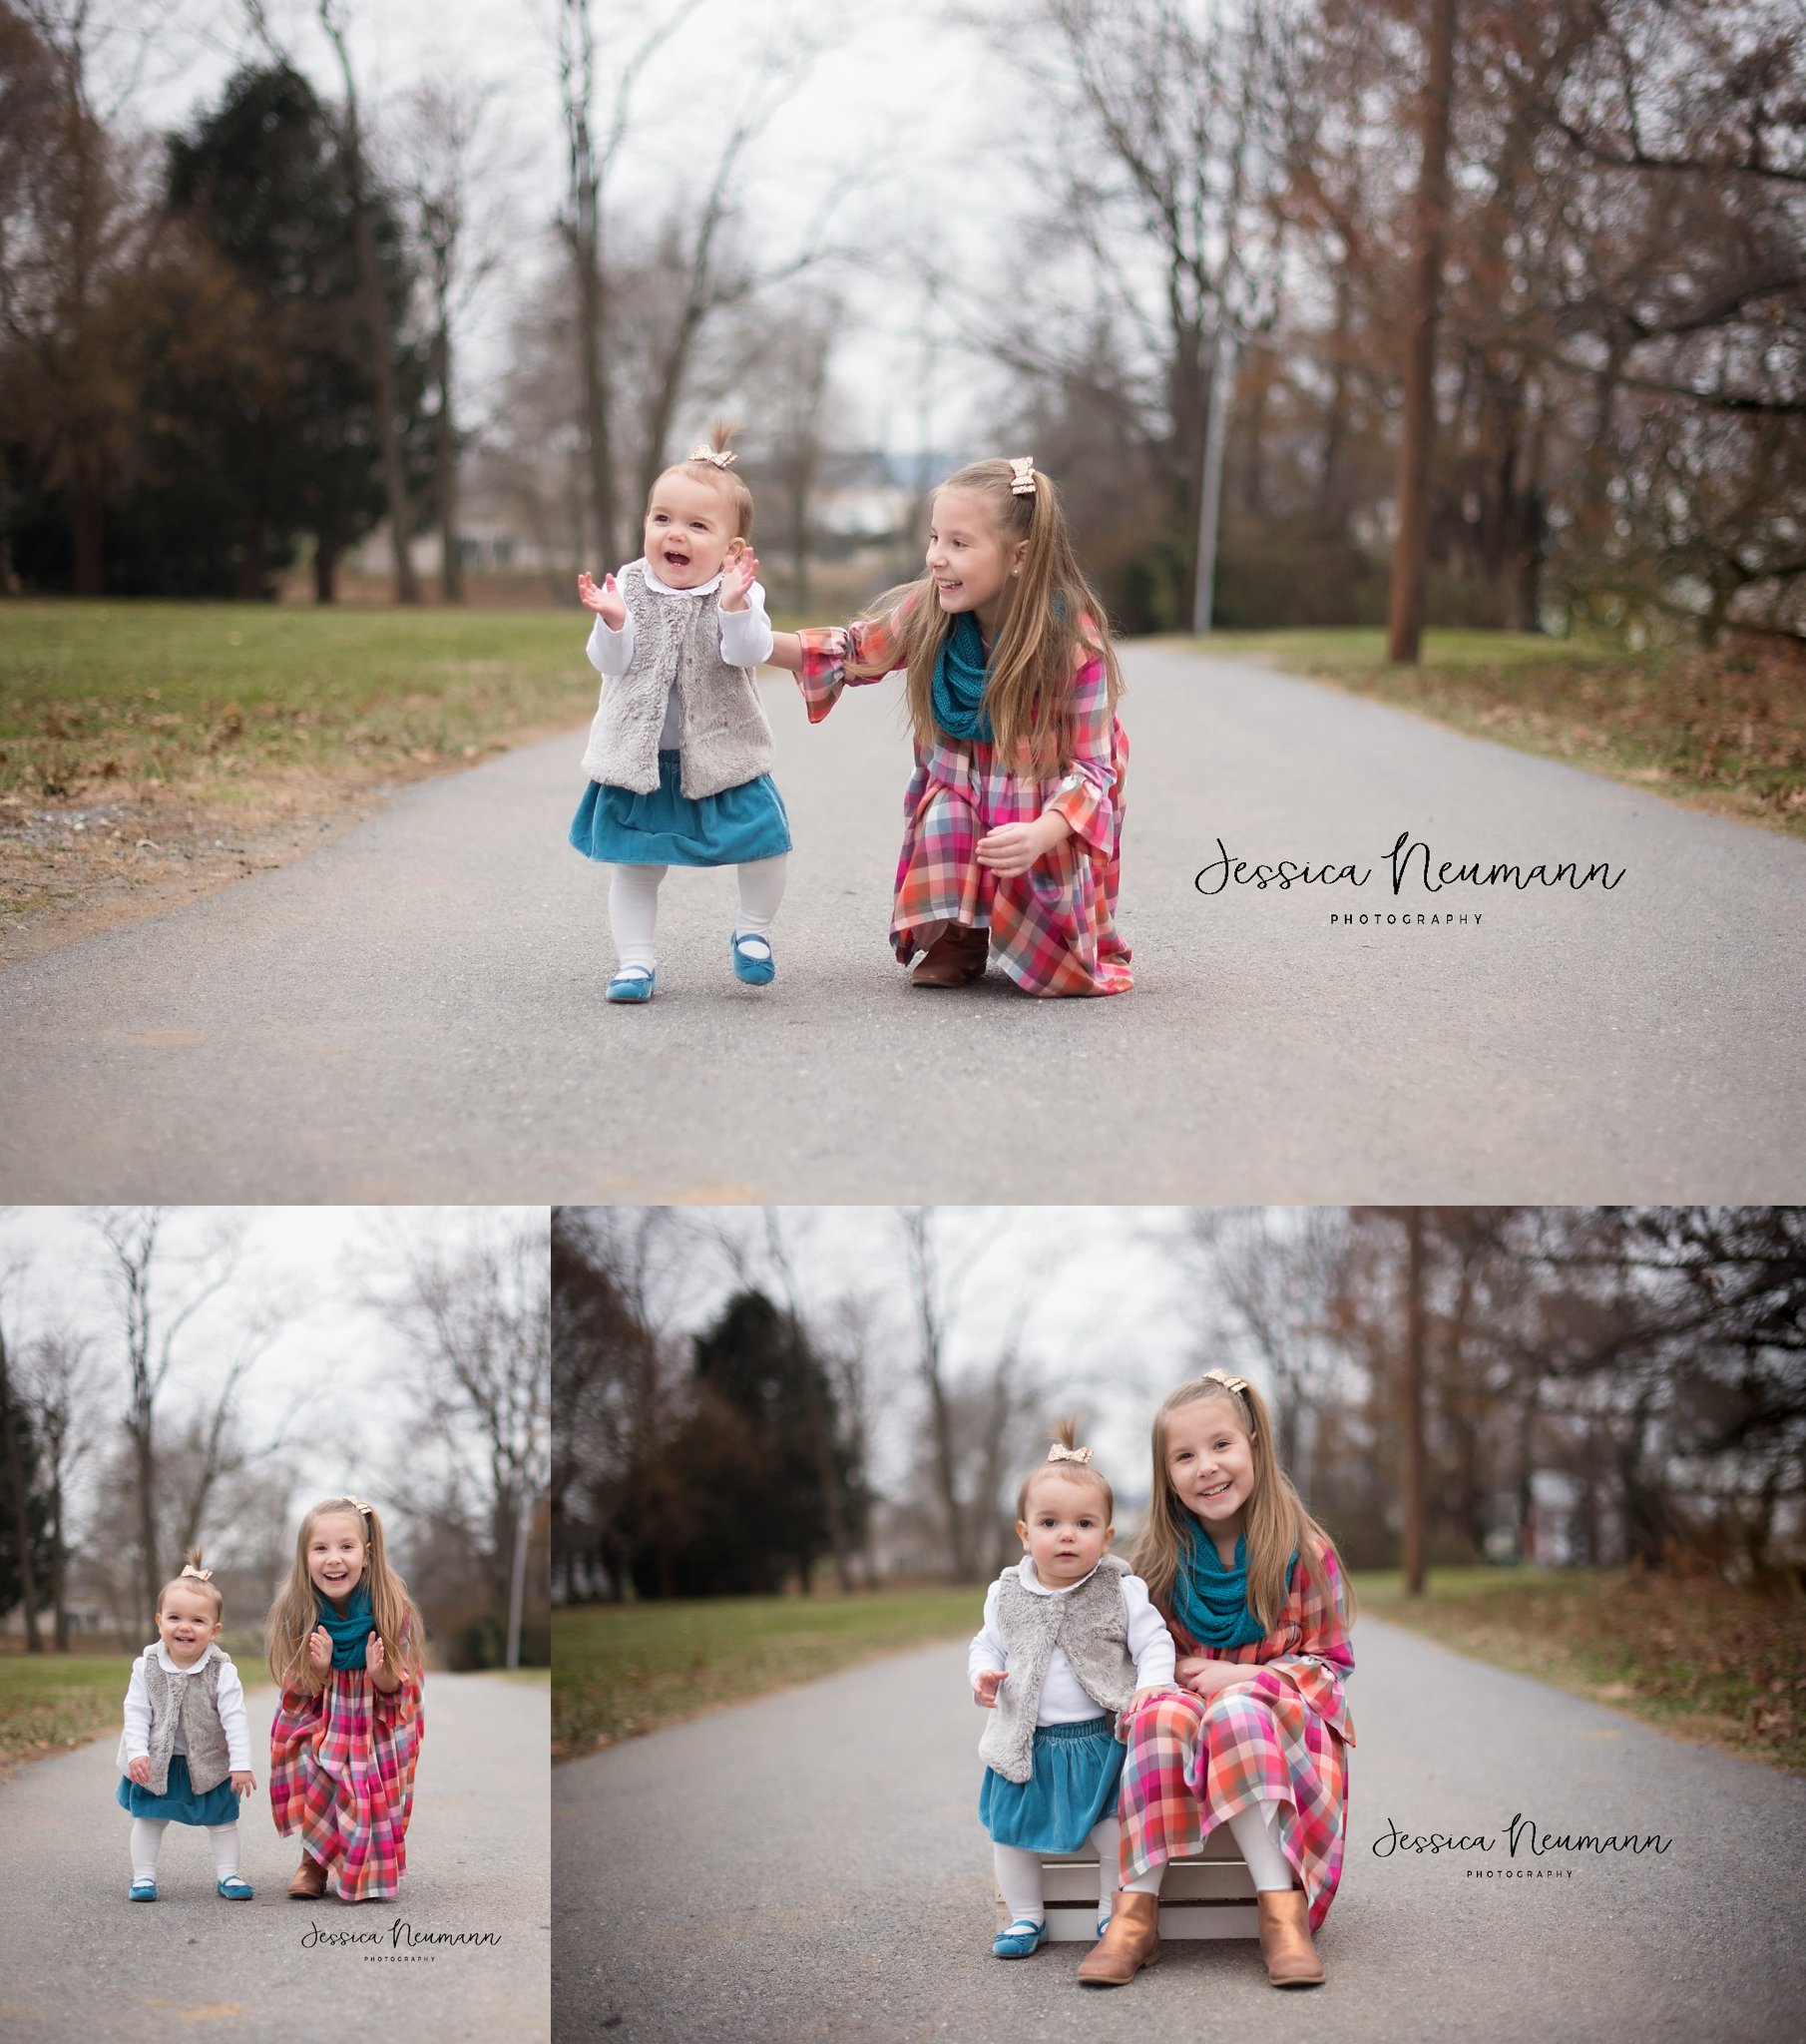 Outdoor sister photo session in Frederick, MD